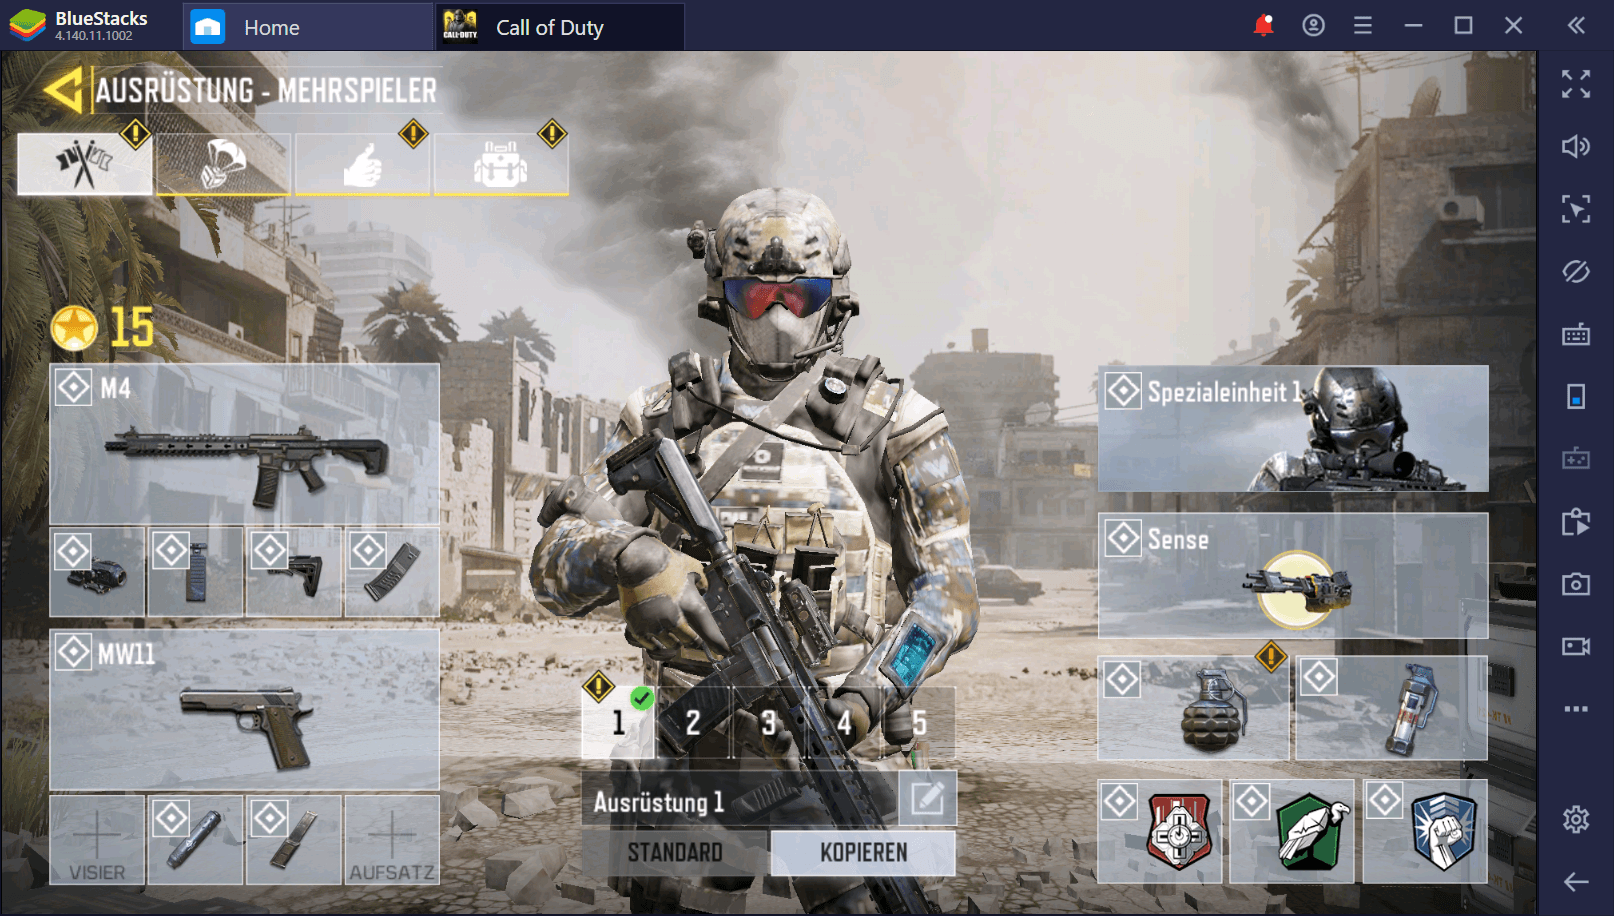 Call of Duty (CoD) Mobile auf dem PC – Lande direkt auf BlueStacks